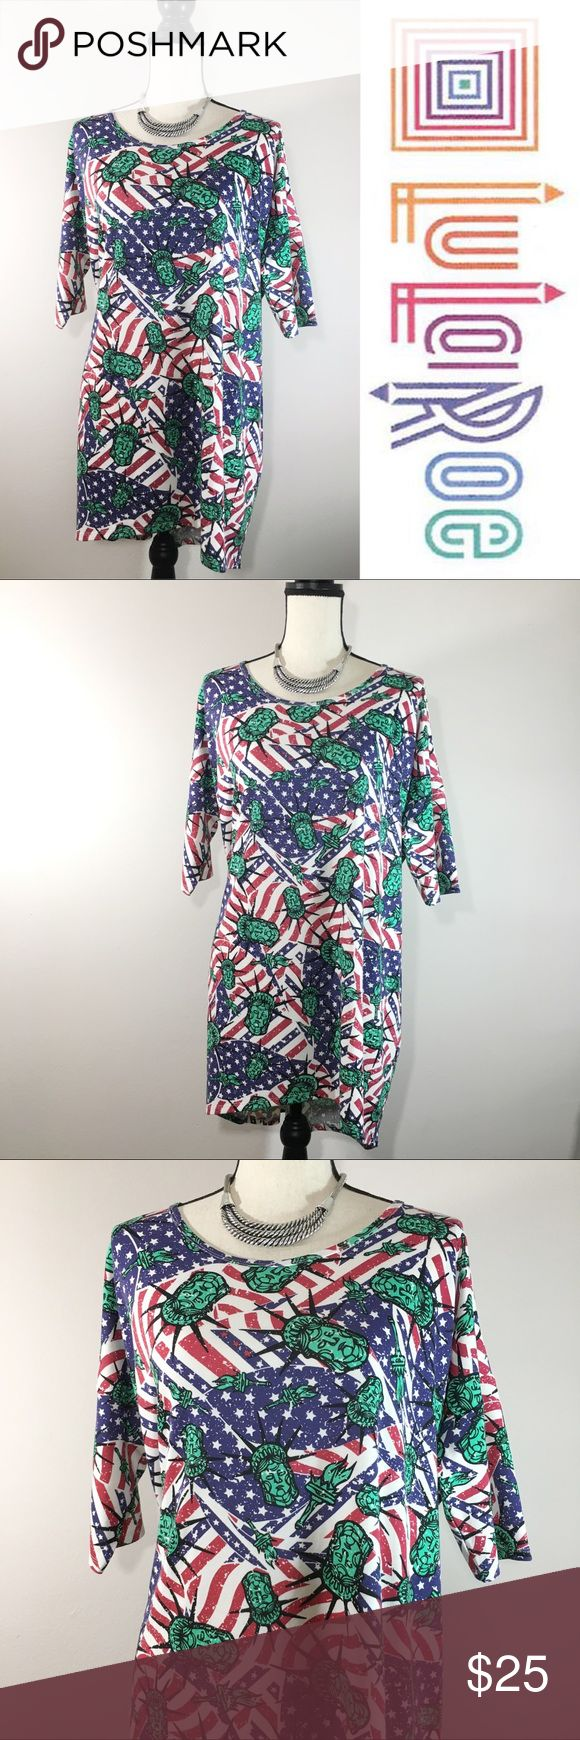 "LuLaRoe Irma Statue of Liberty USA Americana Tunic LuLaRoe Irma Tunic 2017 Americana Lady Liberty USA Flag Stars Stripes EUC. Lularoe Americana collection. Soft & comfortable 'Like New' LuLaRoe Irma tunic long blouse.  * Irma Sizing: Medium (Size 12-14) - Very loose fit comfy design  LuLaRoe's Irma top is a loose, knit ""high-low"" tunic with fitted mid-length sleeves. The extra length in the back makes it a great compliment for leggings. Wear this top and you might never take it off…"